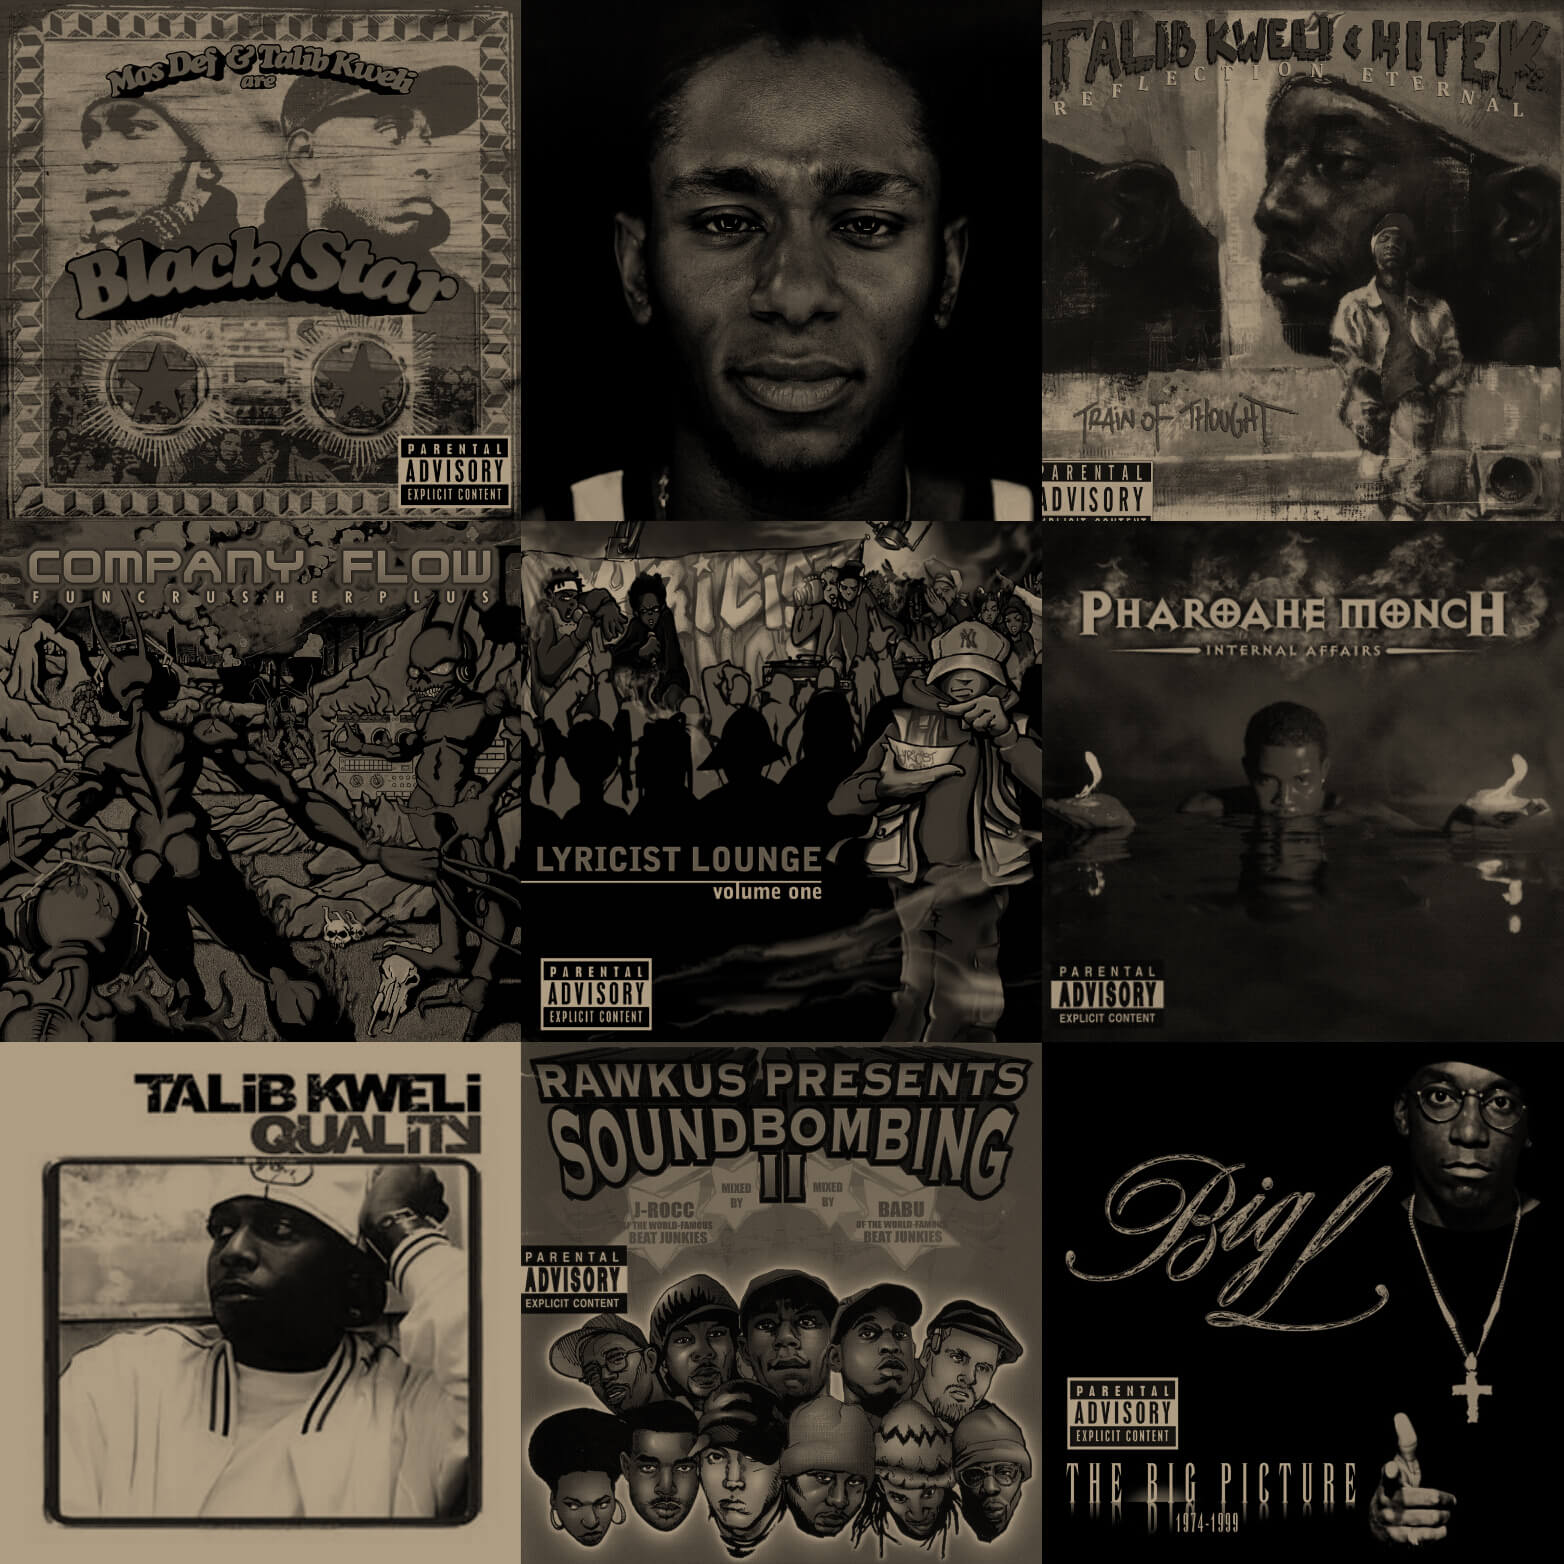 Bring The Rawkus: The Best Albums From Rawkus Records